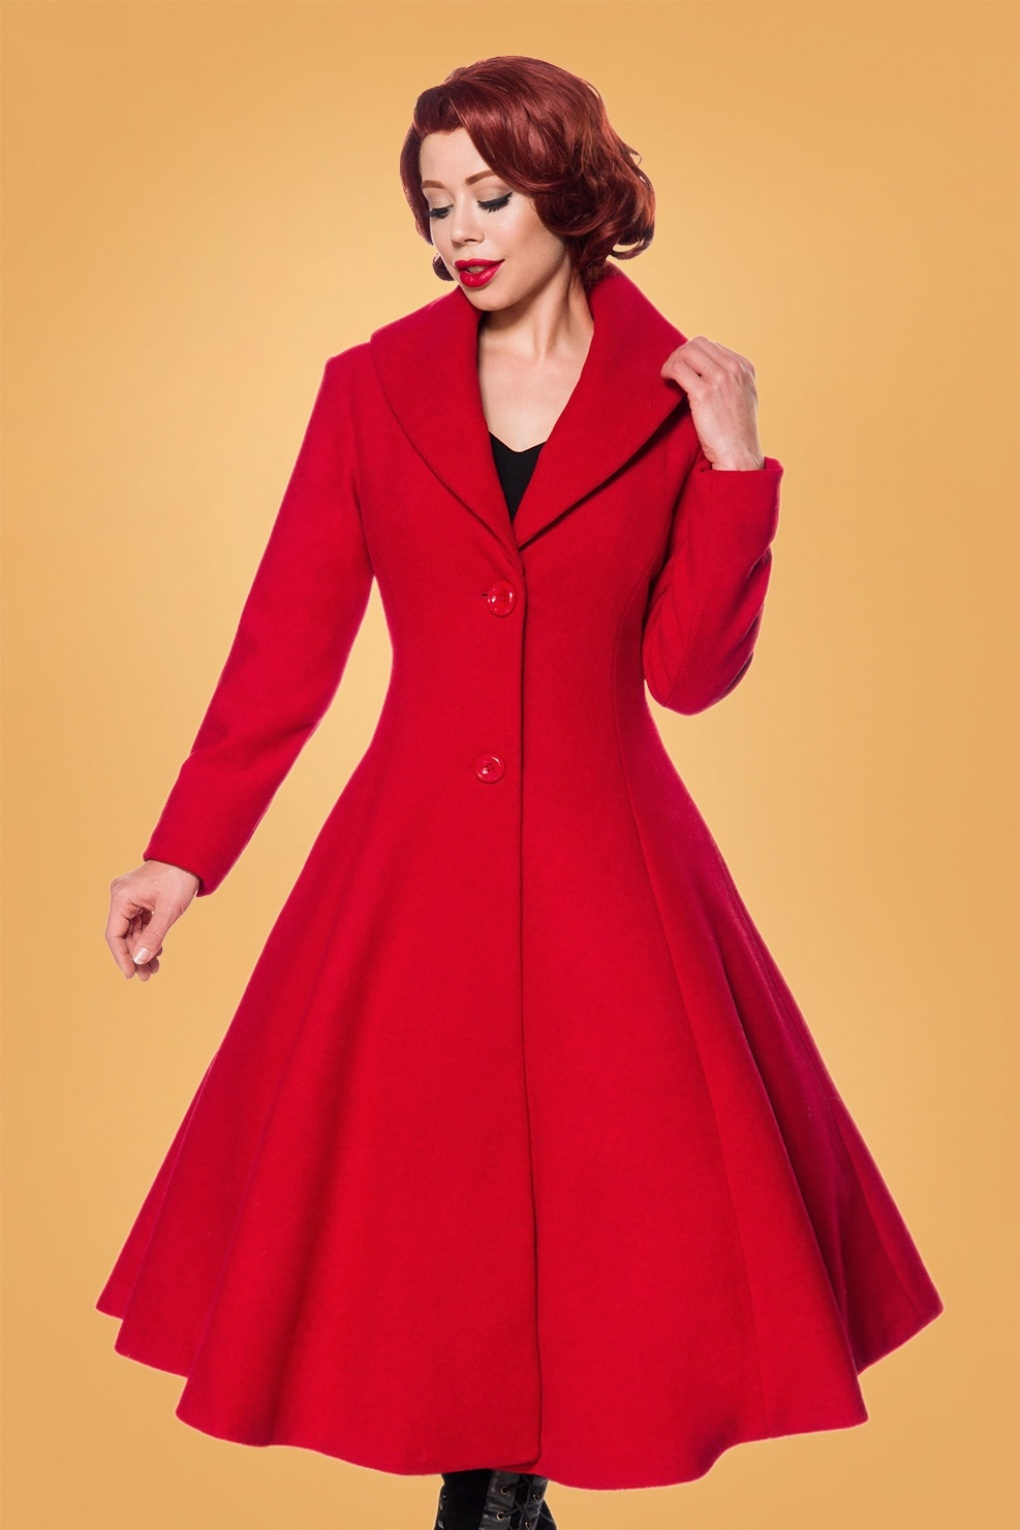 Vintage Coats & Jackets | Retro Coats and Jackets 50s Dorrie Wool Coat in Lipstick Red £122.48 AT vintagedancer.com